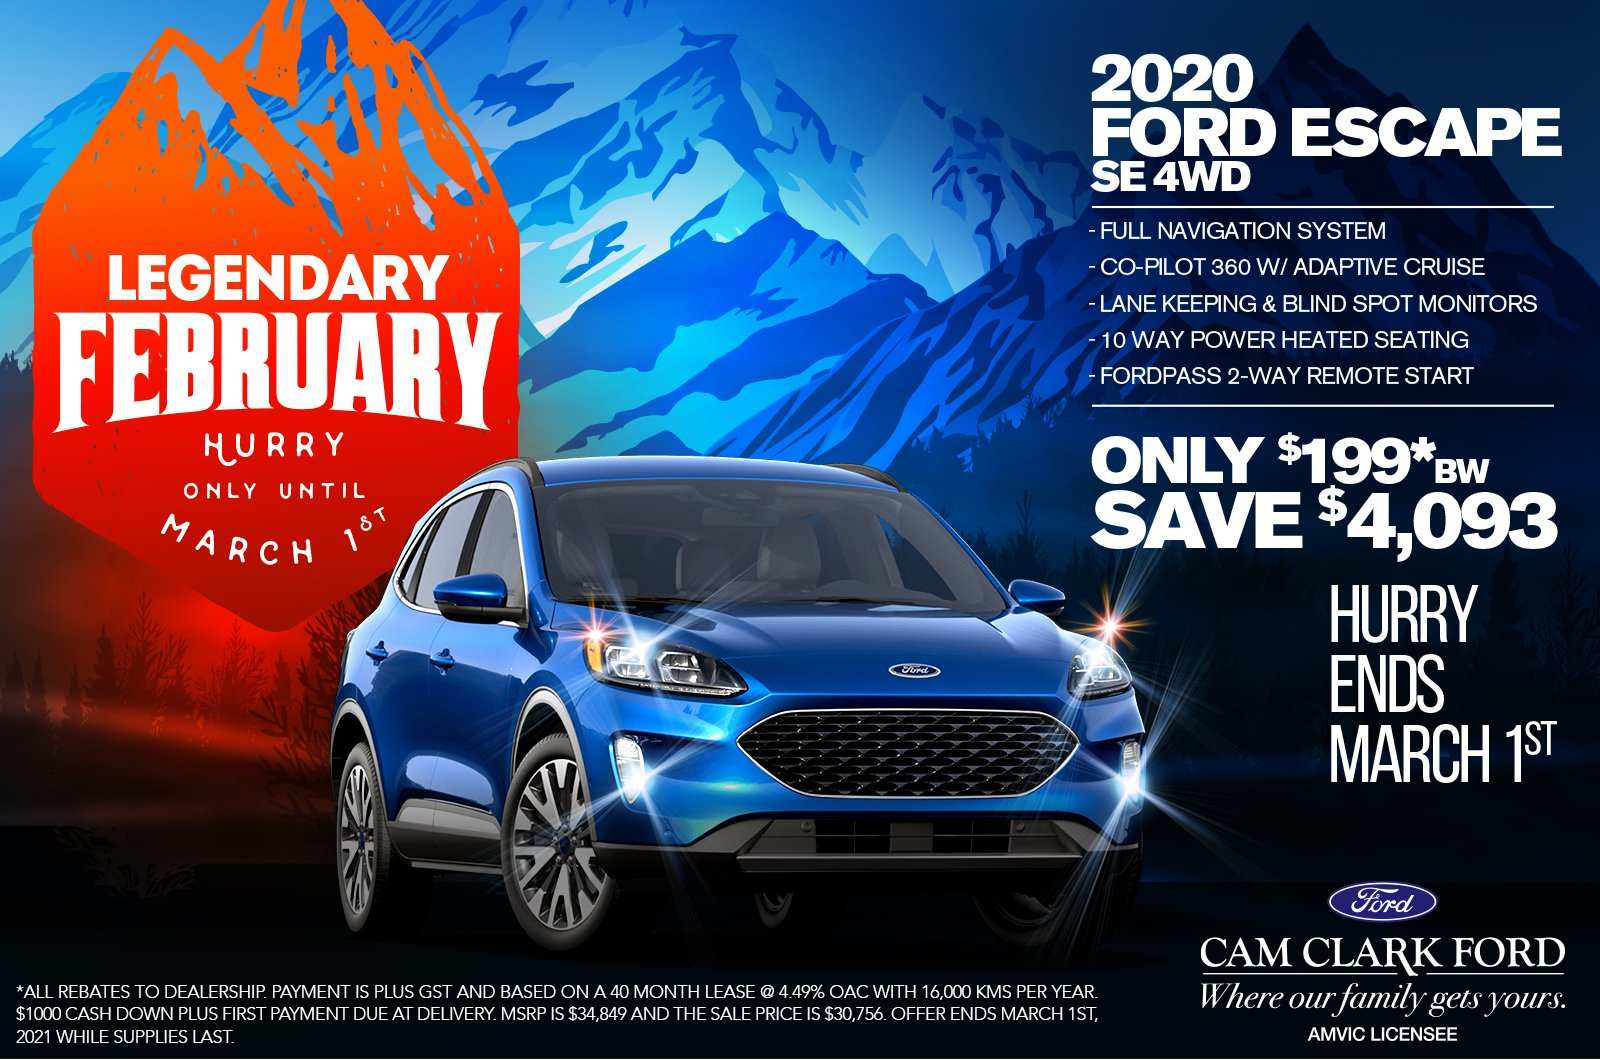 http://2020%20Ford%20Escape%20SE%204WD%20Only%20$199%20BW%20SAVE%20$4093